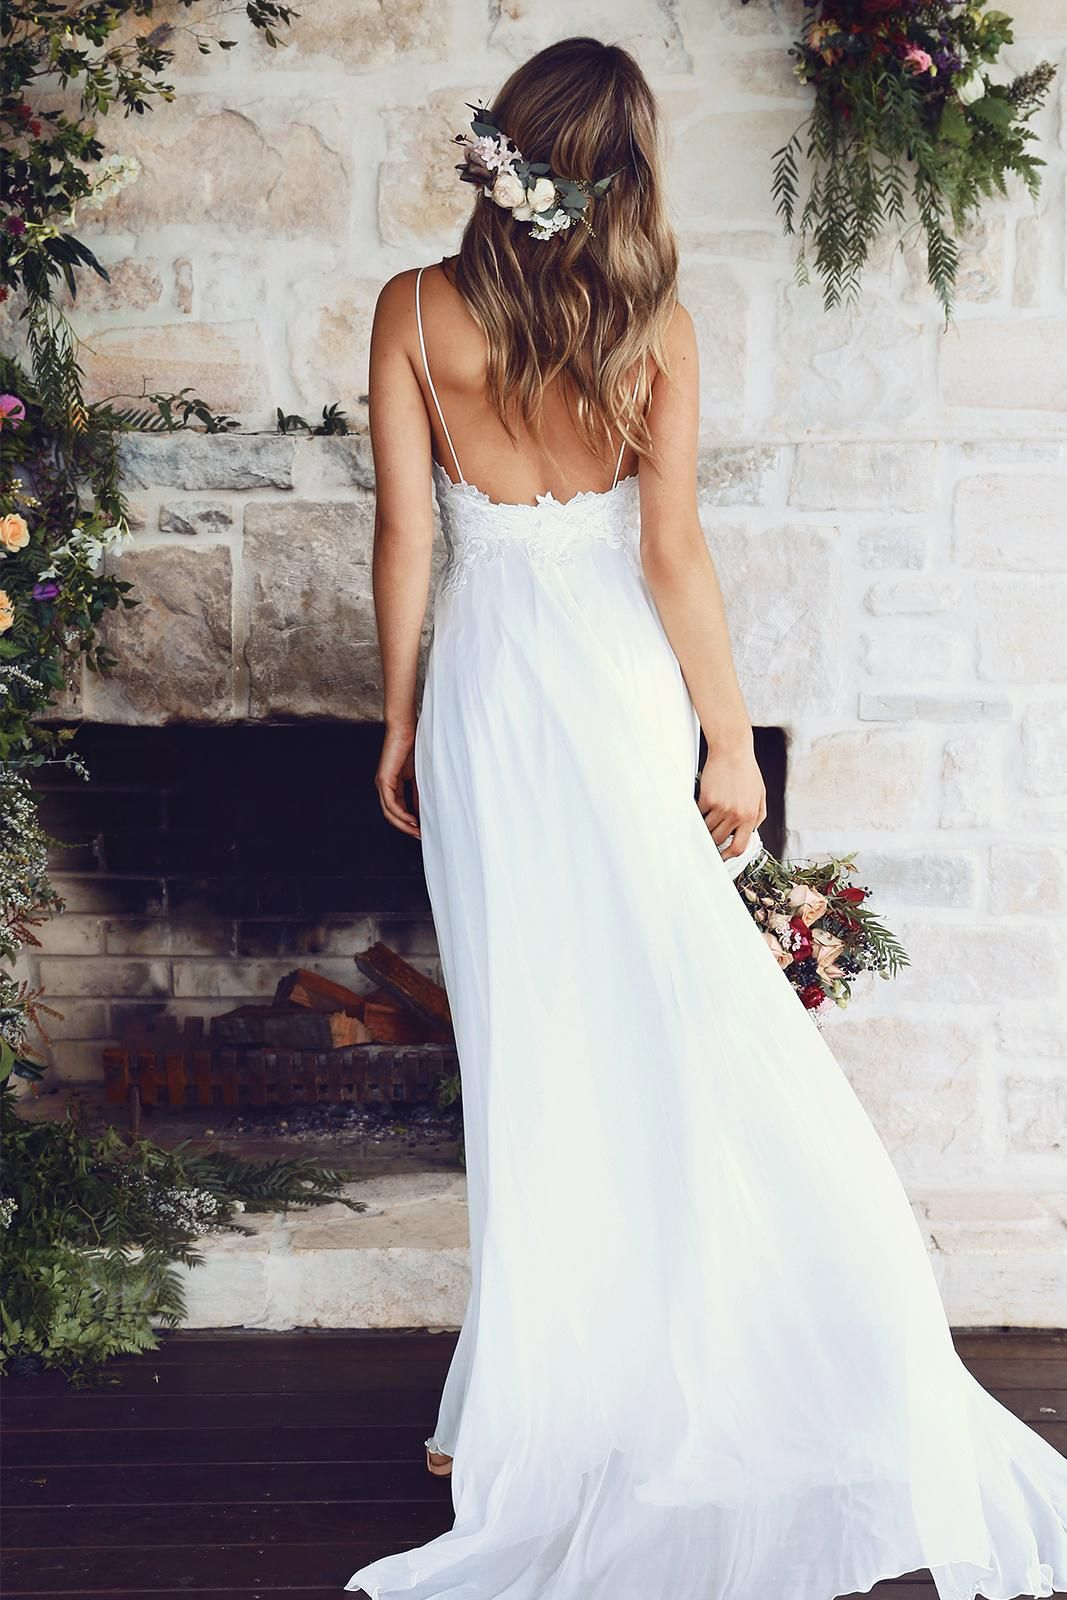 Silhouette wedding dresses simple bridal  Tara  Silhouettes Romantic and Gowns